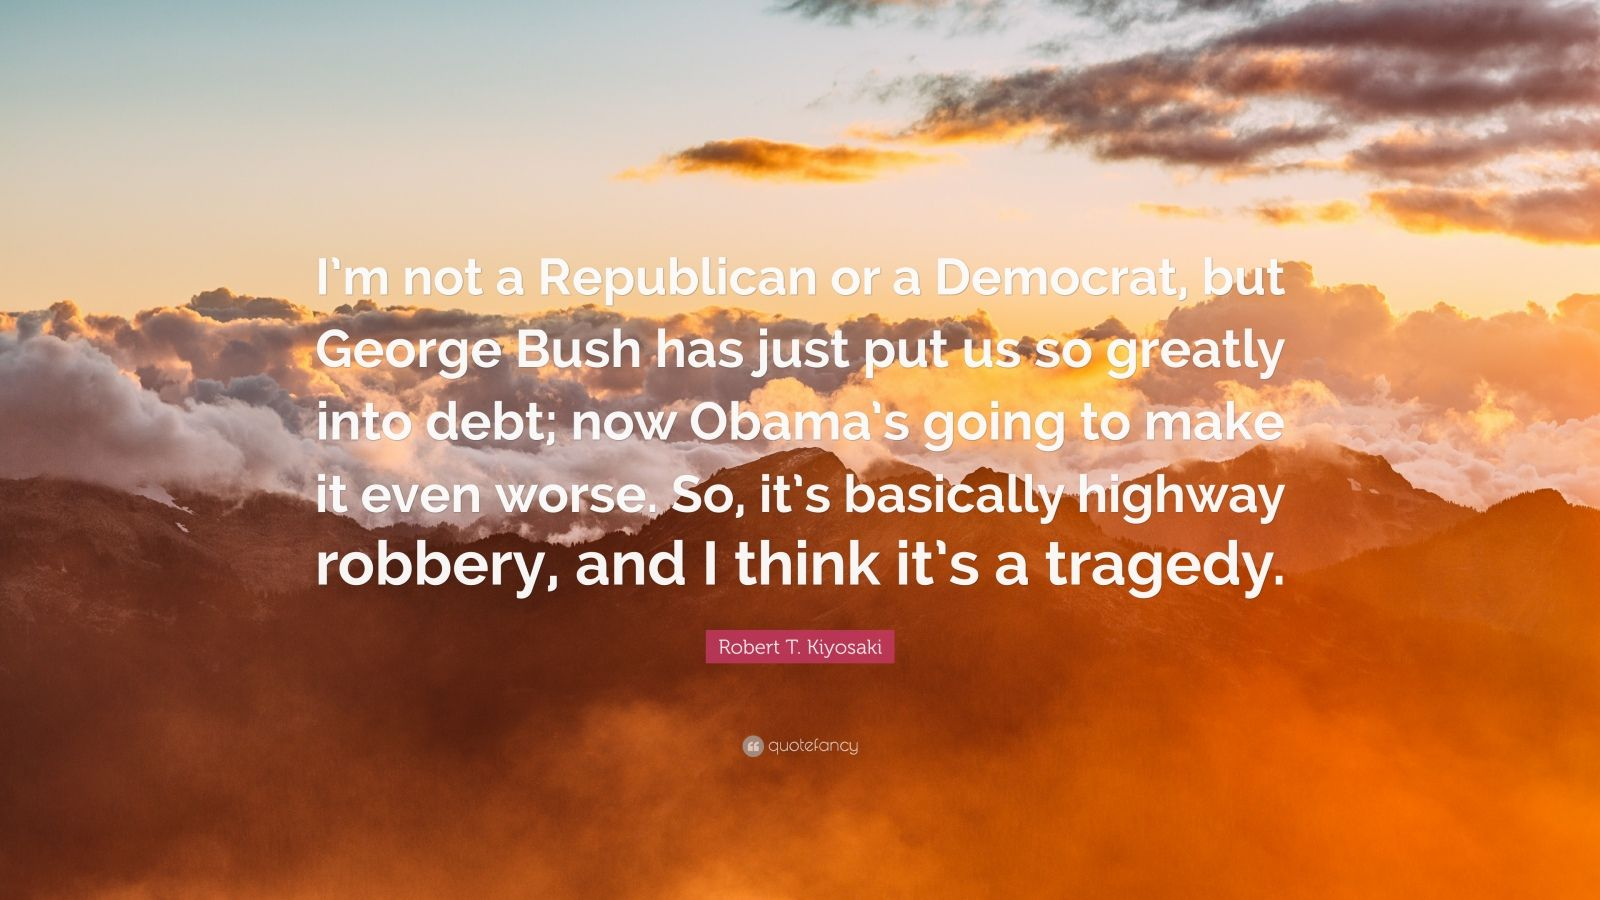 "Robert T. Kiyosaki Quote: ""I'm not a Republican or a Democrat, but George Bush has just put us so greatly into debt; now Obama's going to make it even worse. So, it's basically highway robbery, and I think it's a tragedy."""